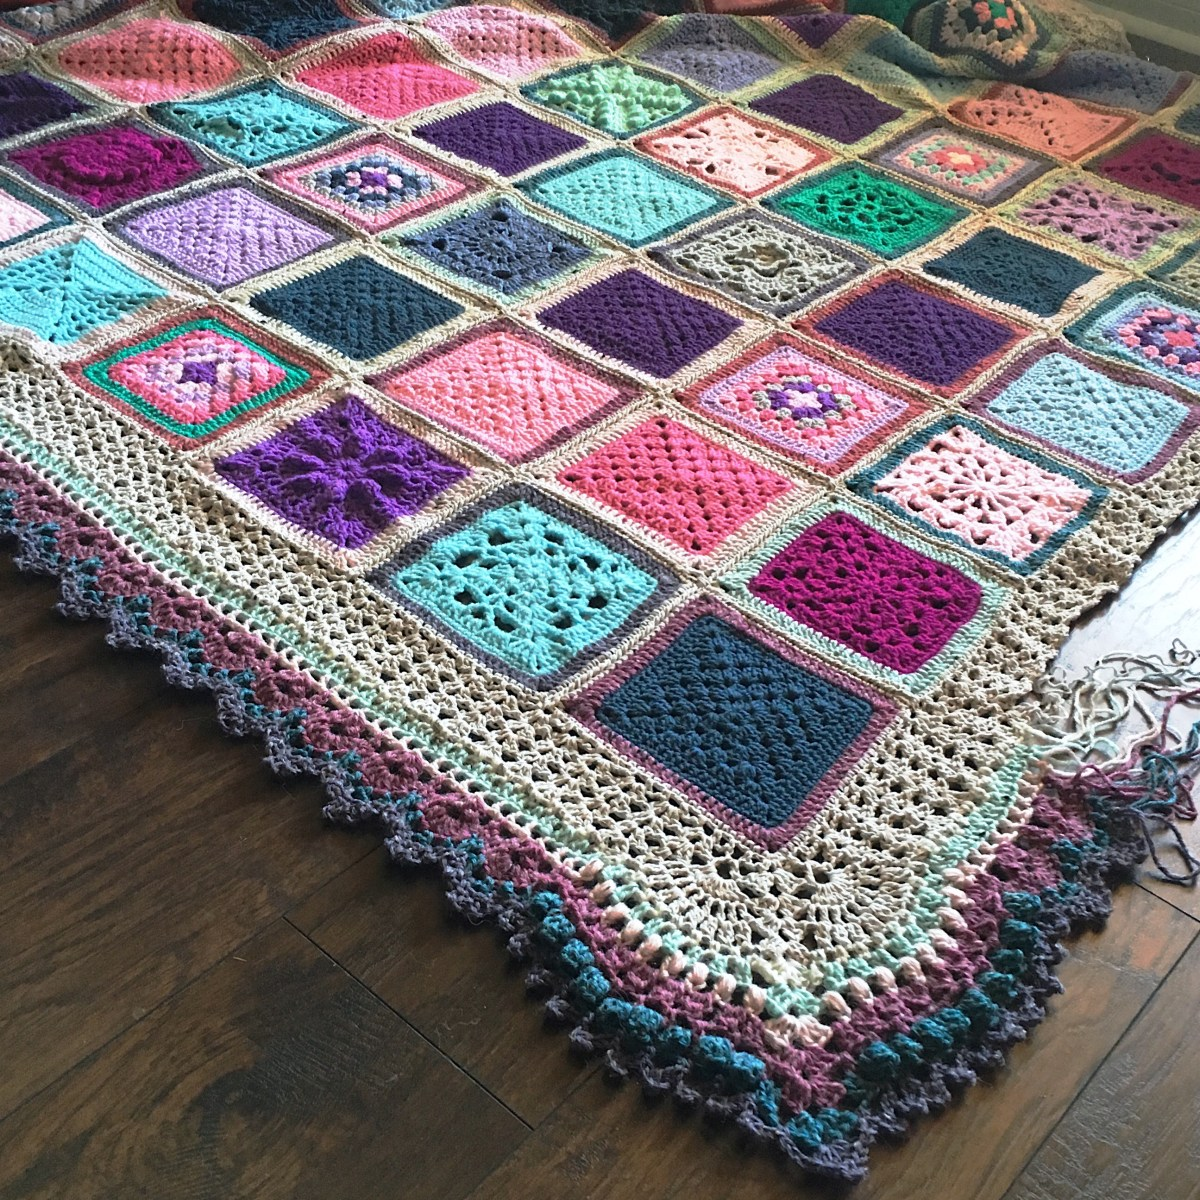 VVCAL Vibrant Vintage Crochet Blanket - Main Info Page (2016 CAL)